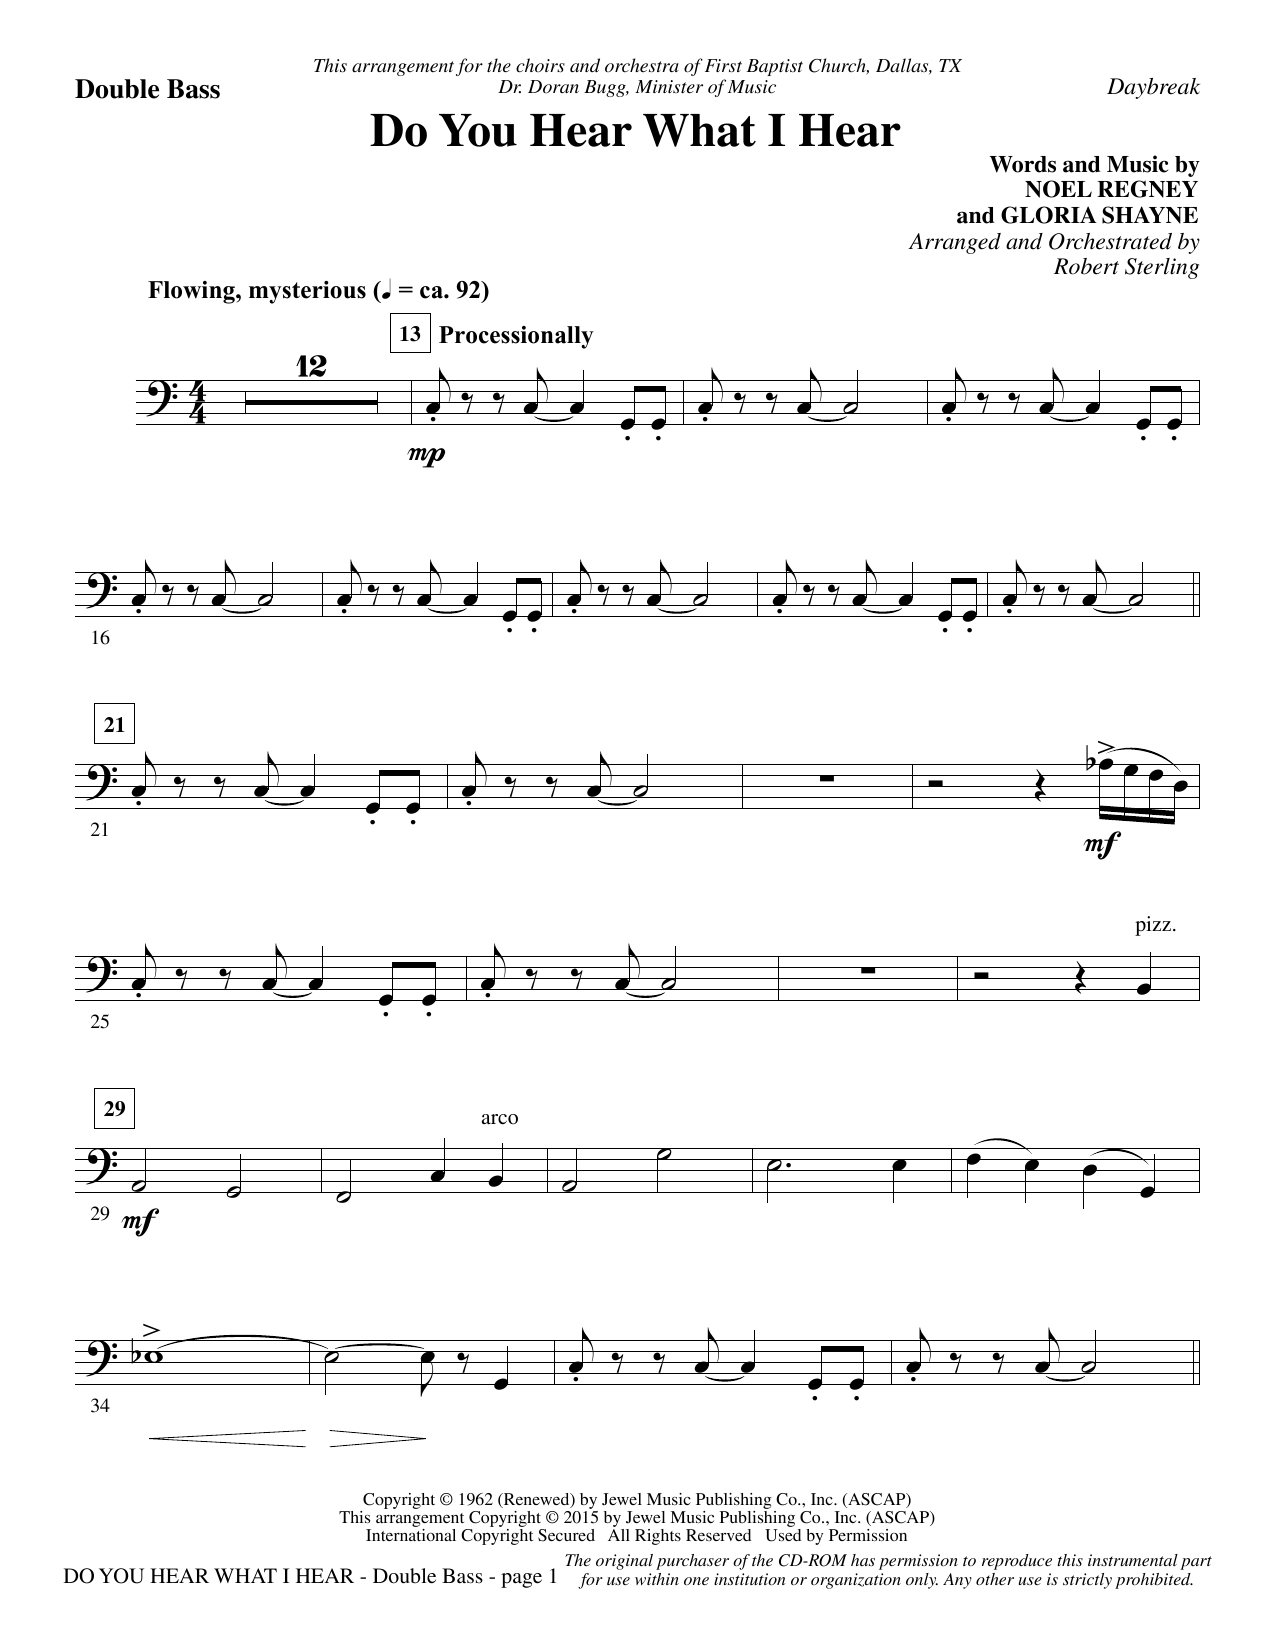 Do You Hear What I Hear - Double Bass Sheet Music